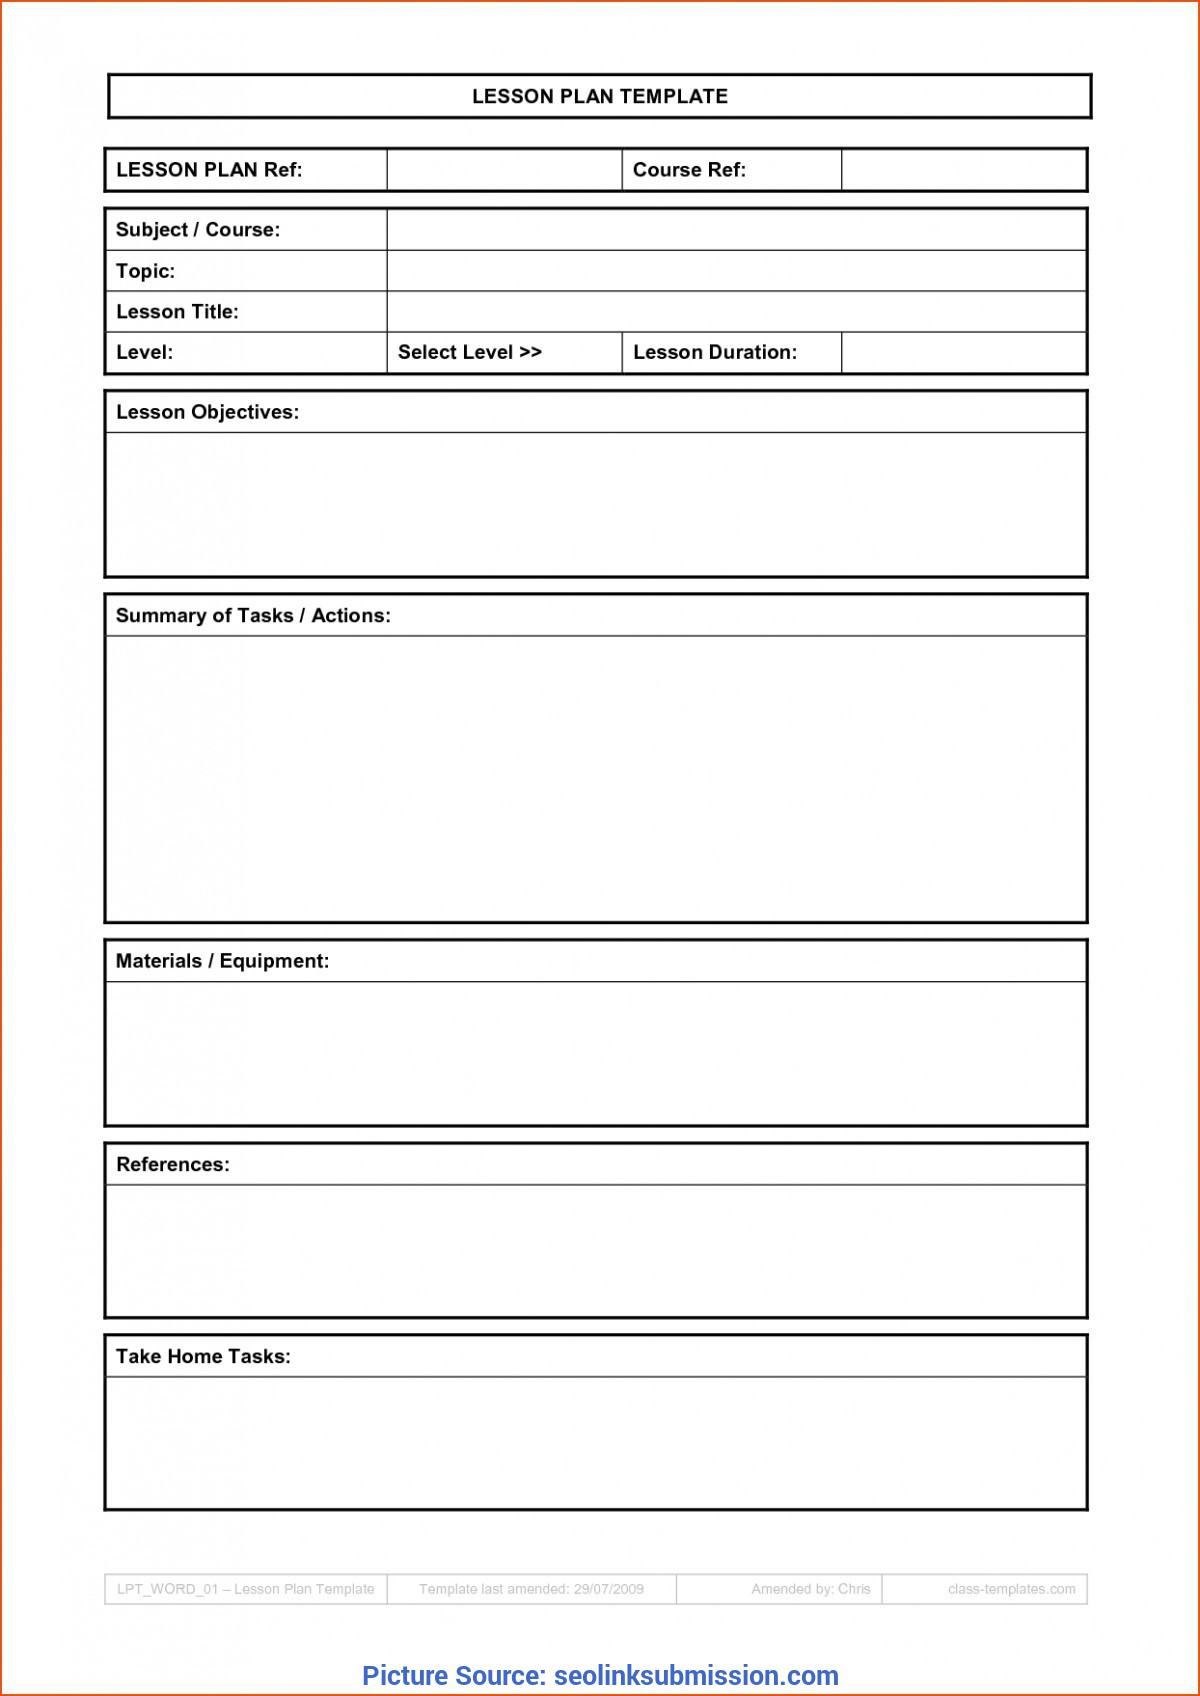 Typical Basic Lesson Plan Basic Lesson Plan Template | Professional Temp